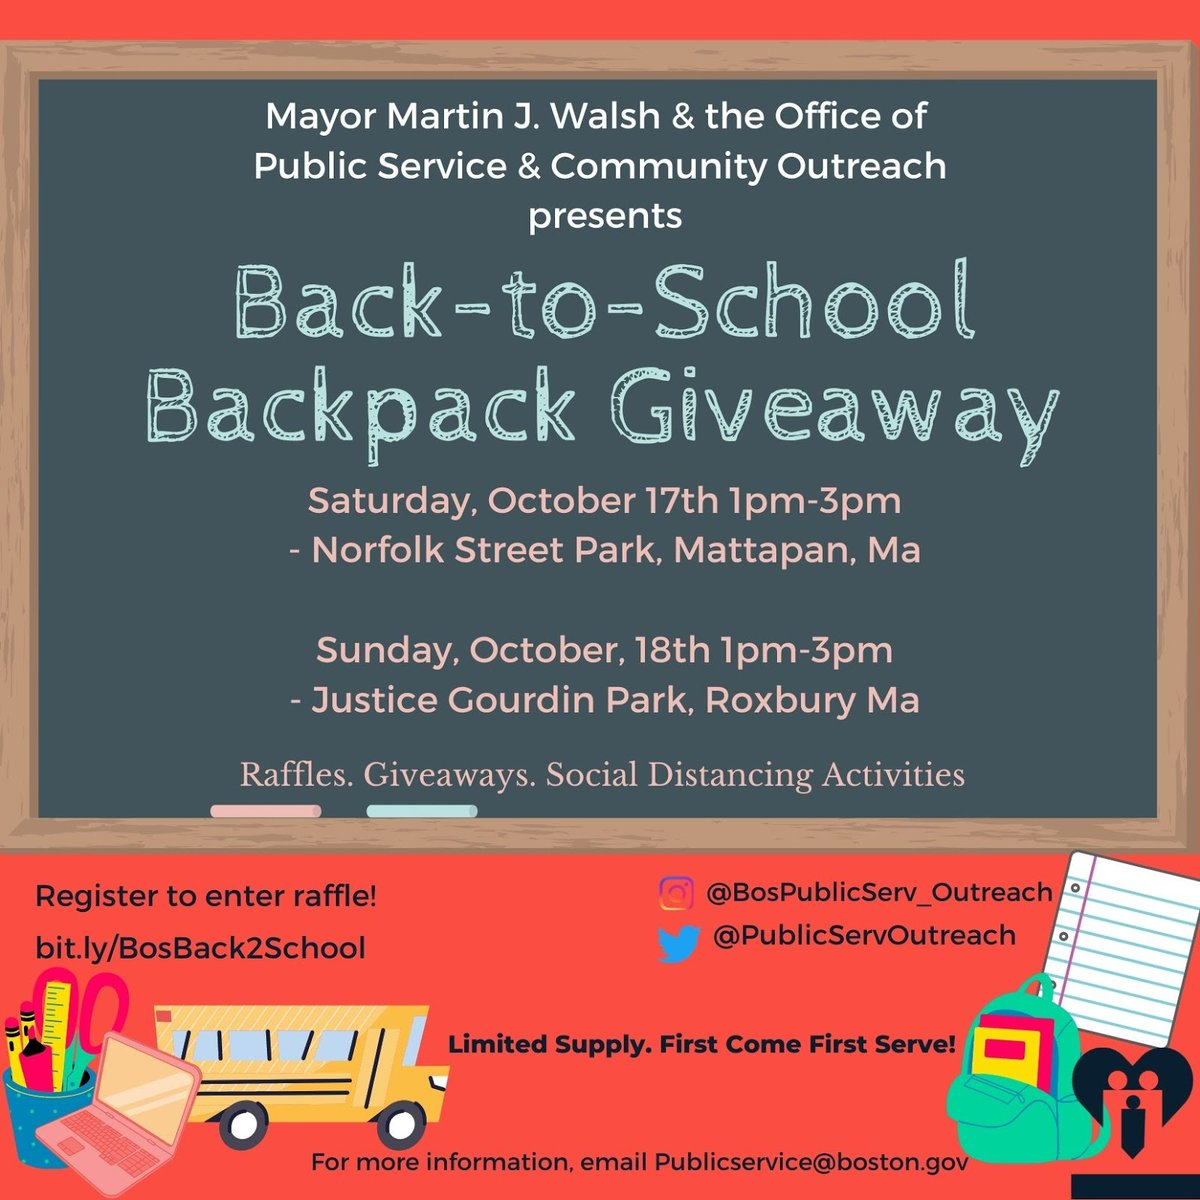 Calling all families of @BostonSchools students! Do you need school supplies for the new school year? Join @BosServOutreach at one of their back-to-school kickoff events in October, where they're handing out backpacks full of supplies: